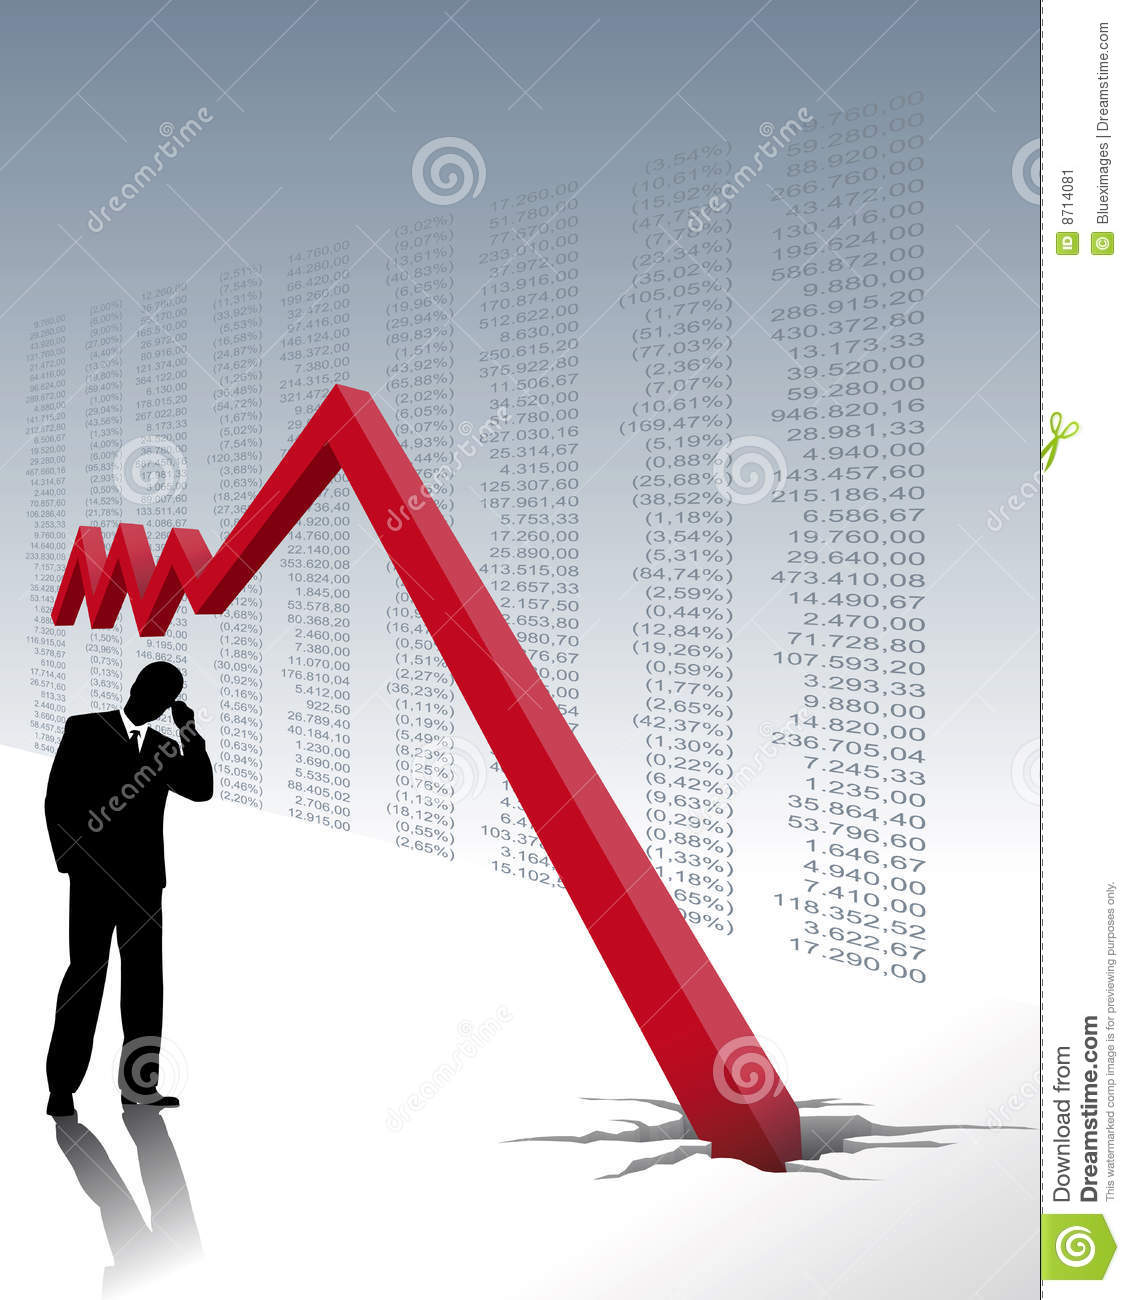 Stock Market Crash Stock Image Image 8714081